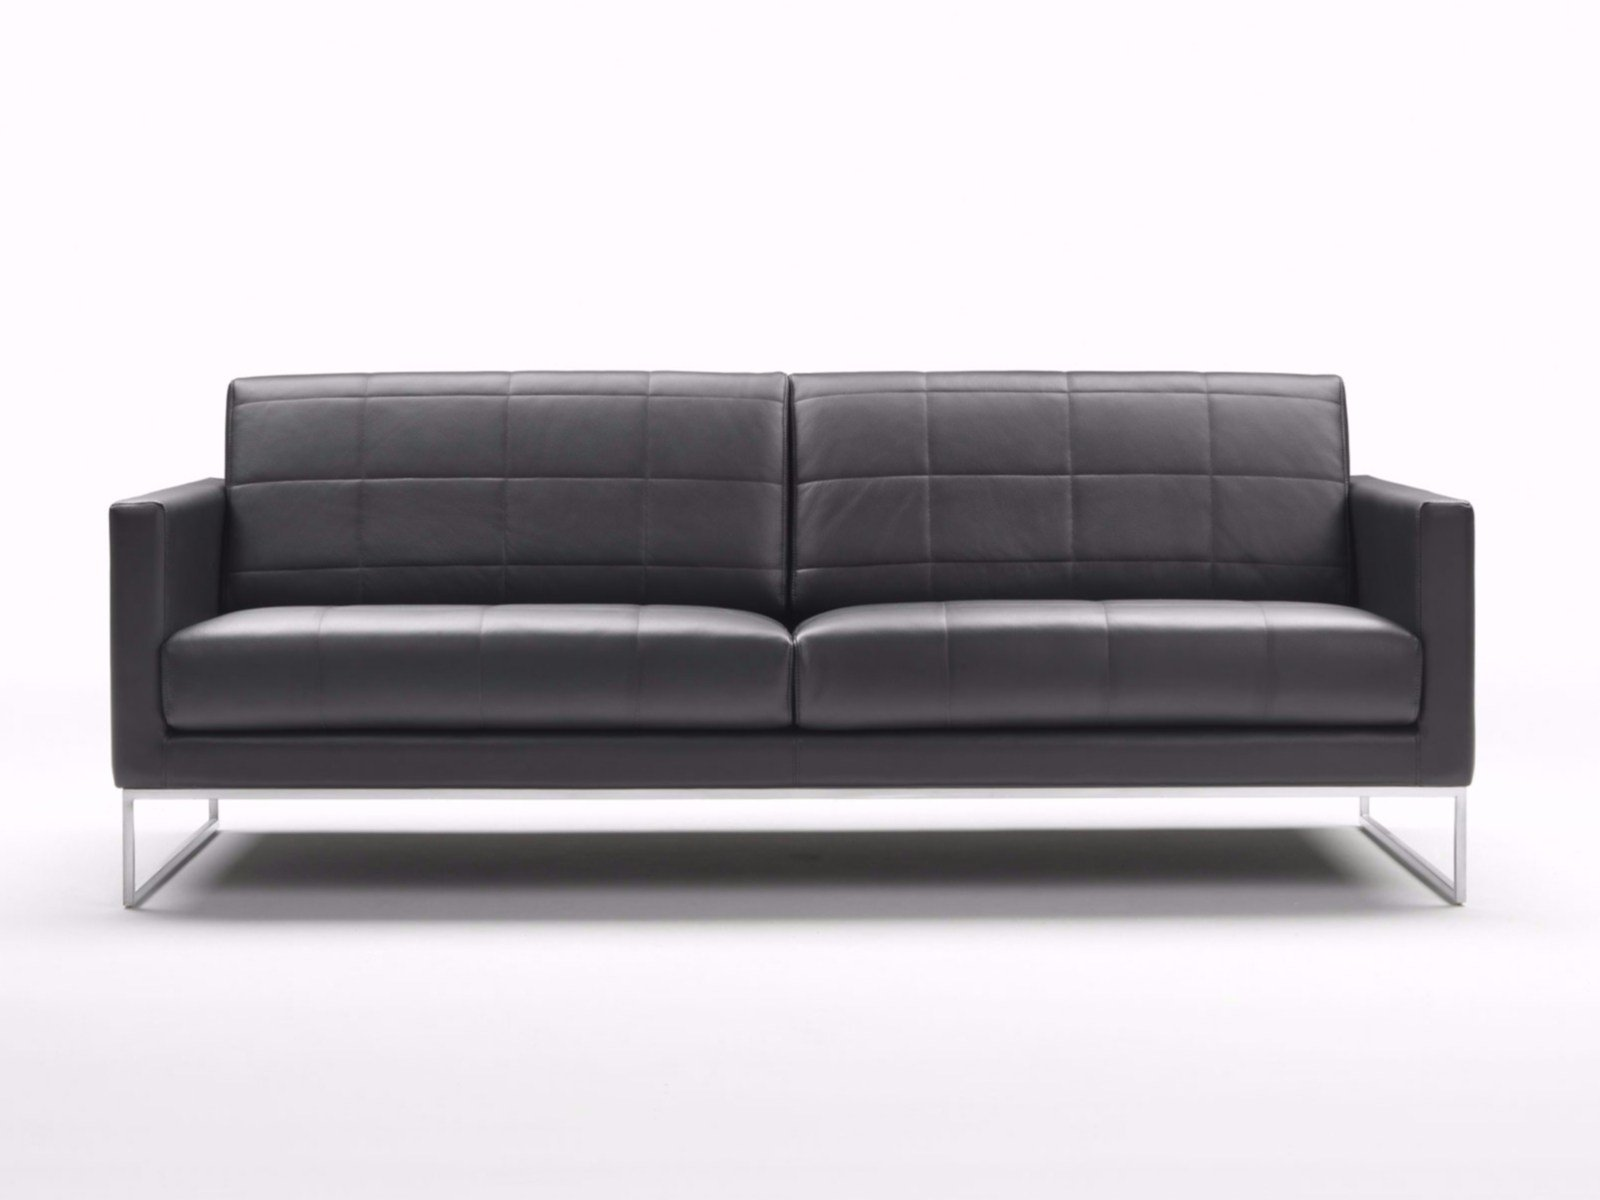 QUILT | Leather sofa By Tacchini design PearsonLloyd : quilted sofa - Adamdwight.com